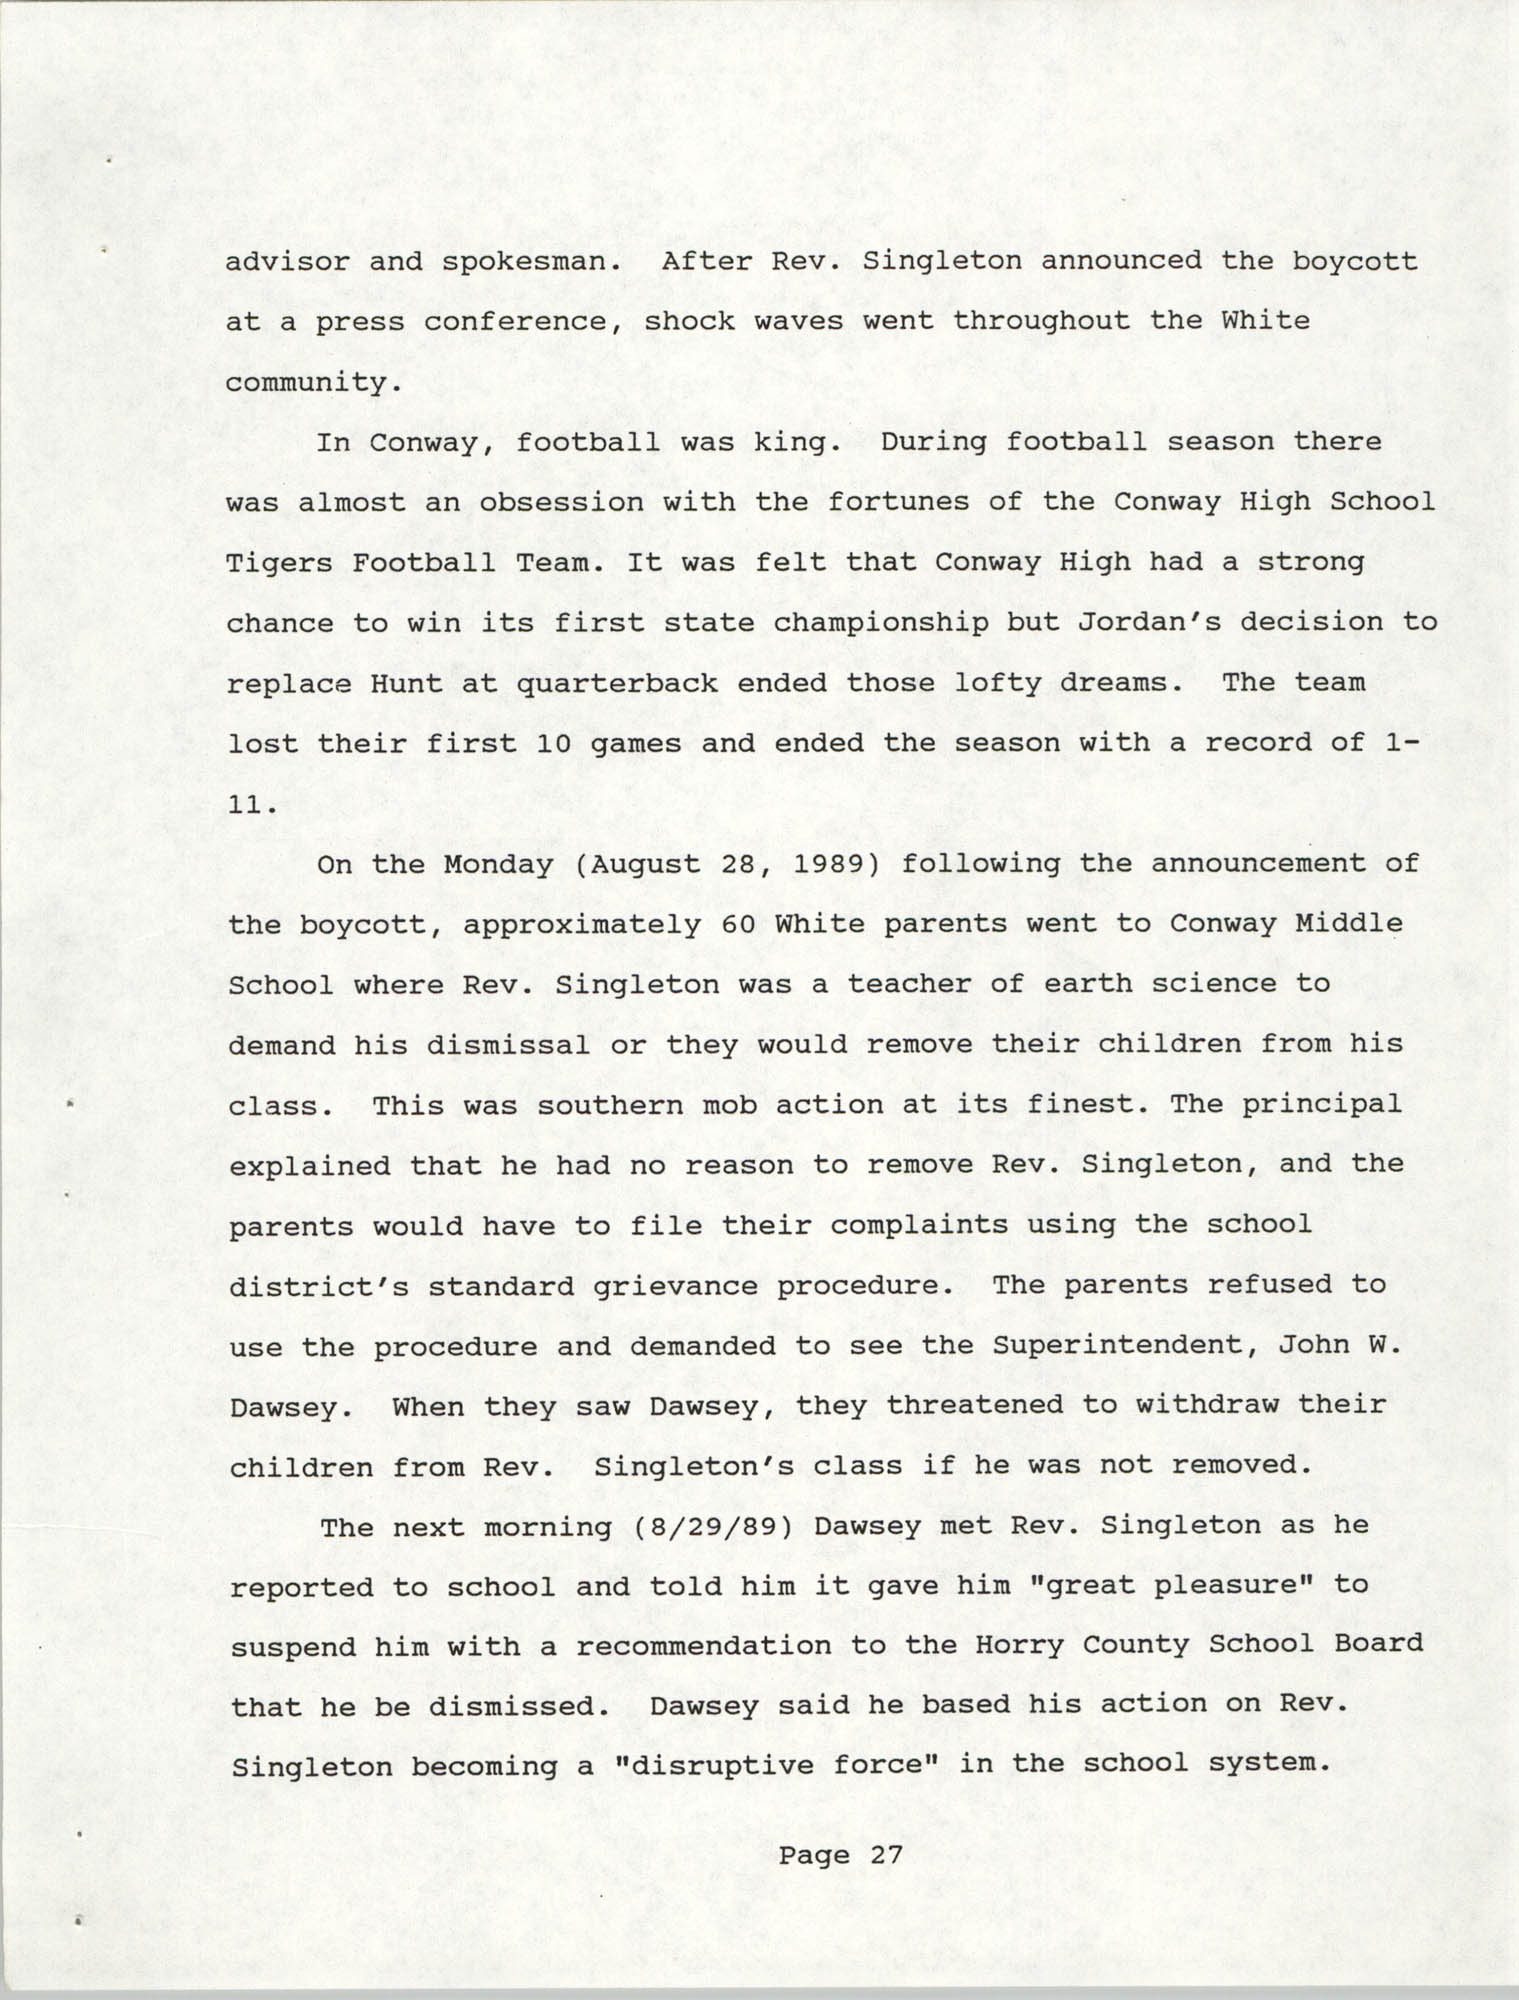 South Carolina Conference of Branches of the NAACP, 1990 Annual Report, Part Two, Page 27